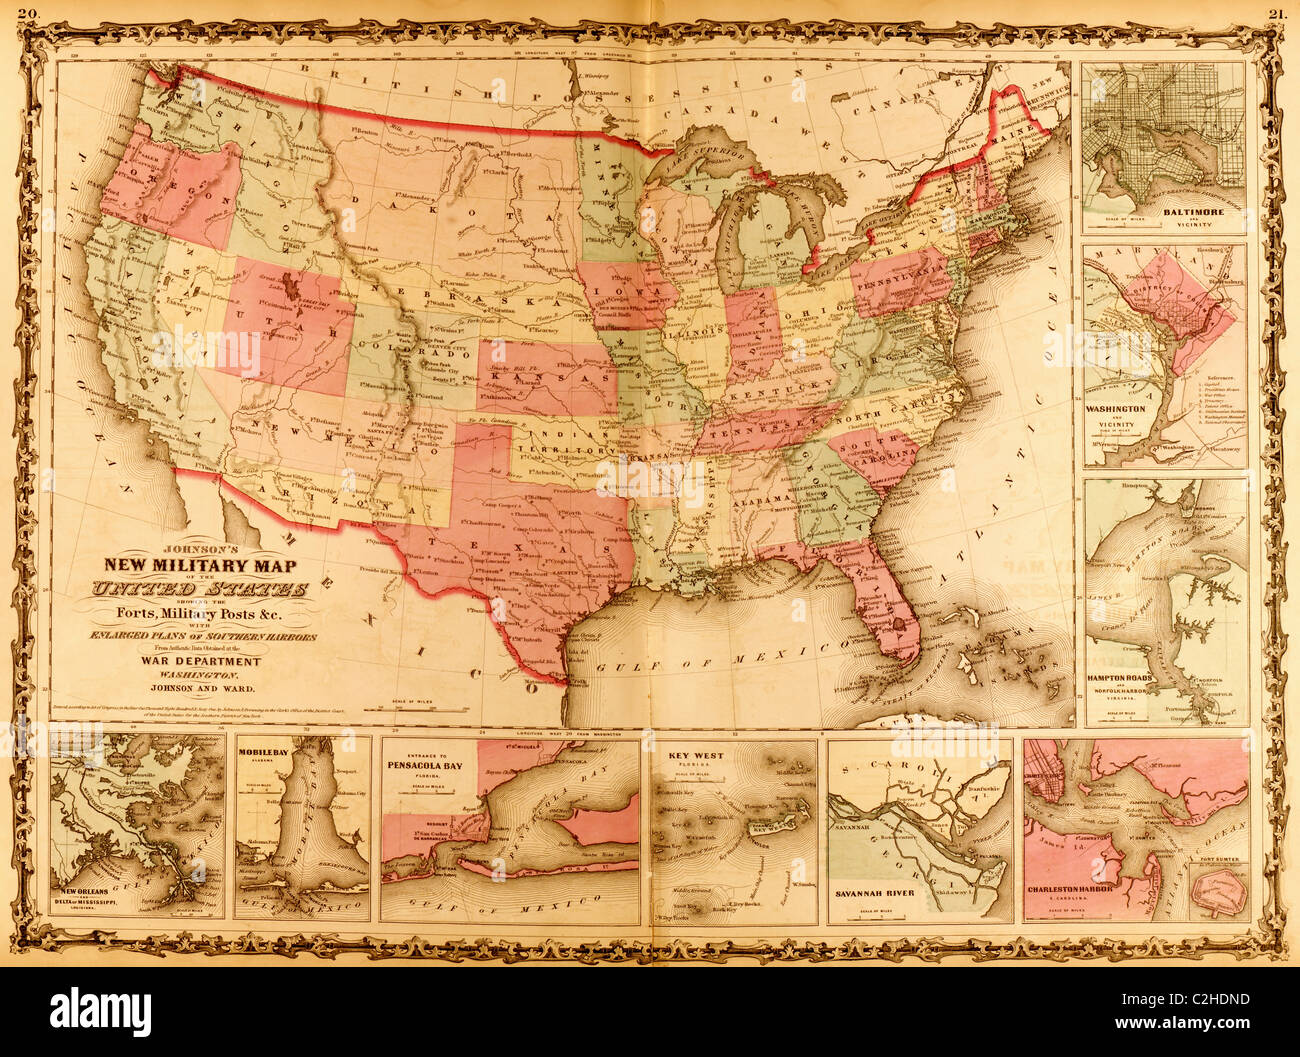 Military Map Of The United States Stock Photo Royalty Free - Us map 1862